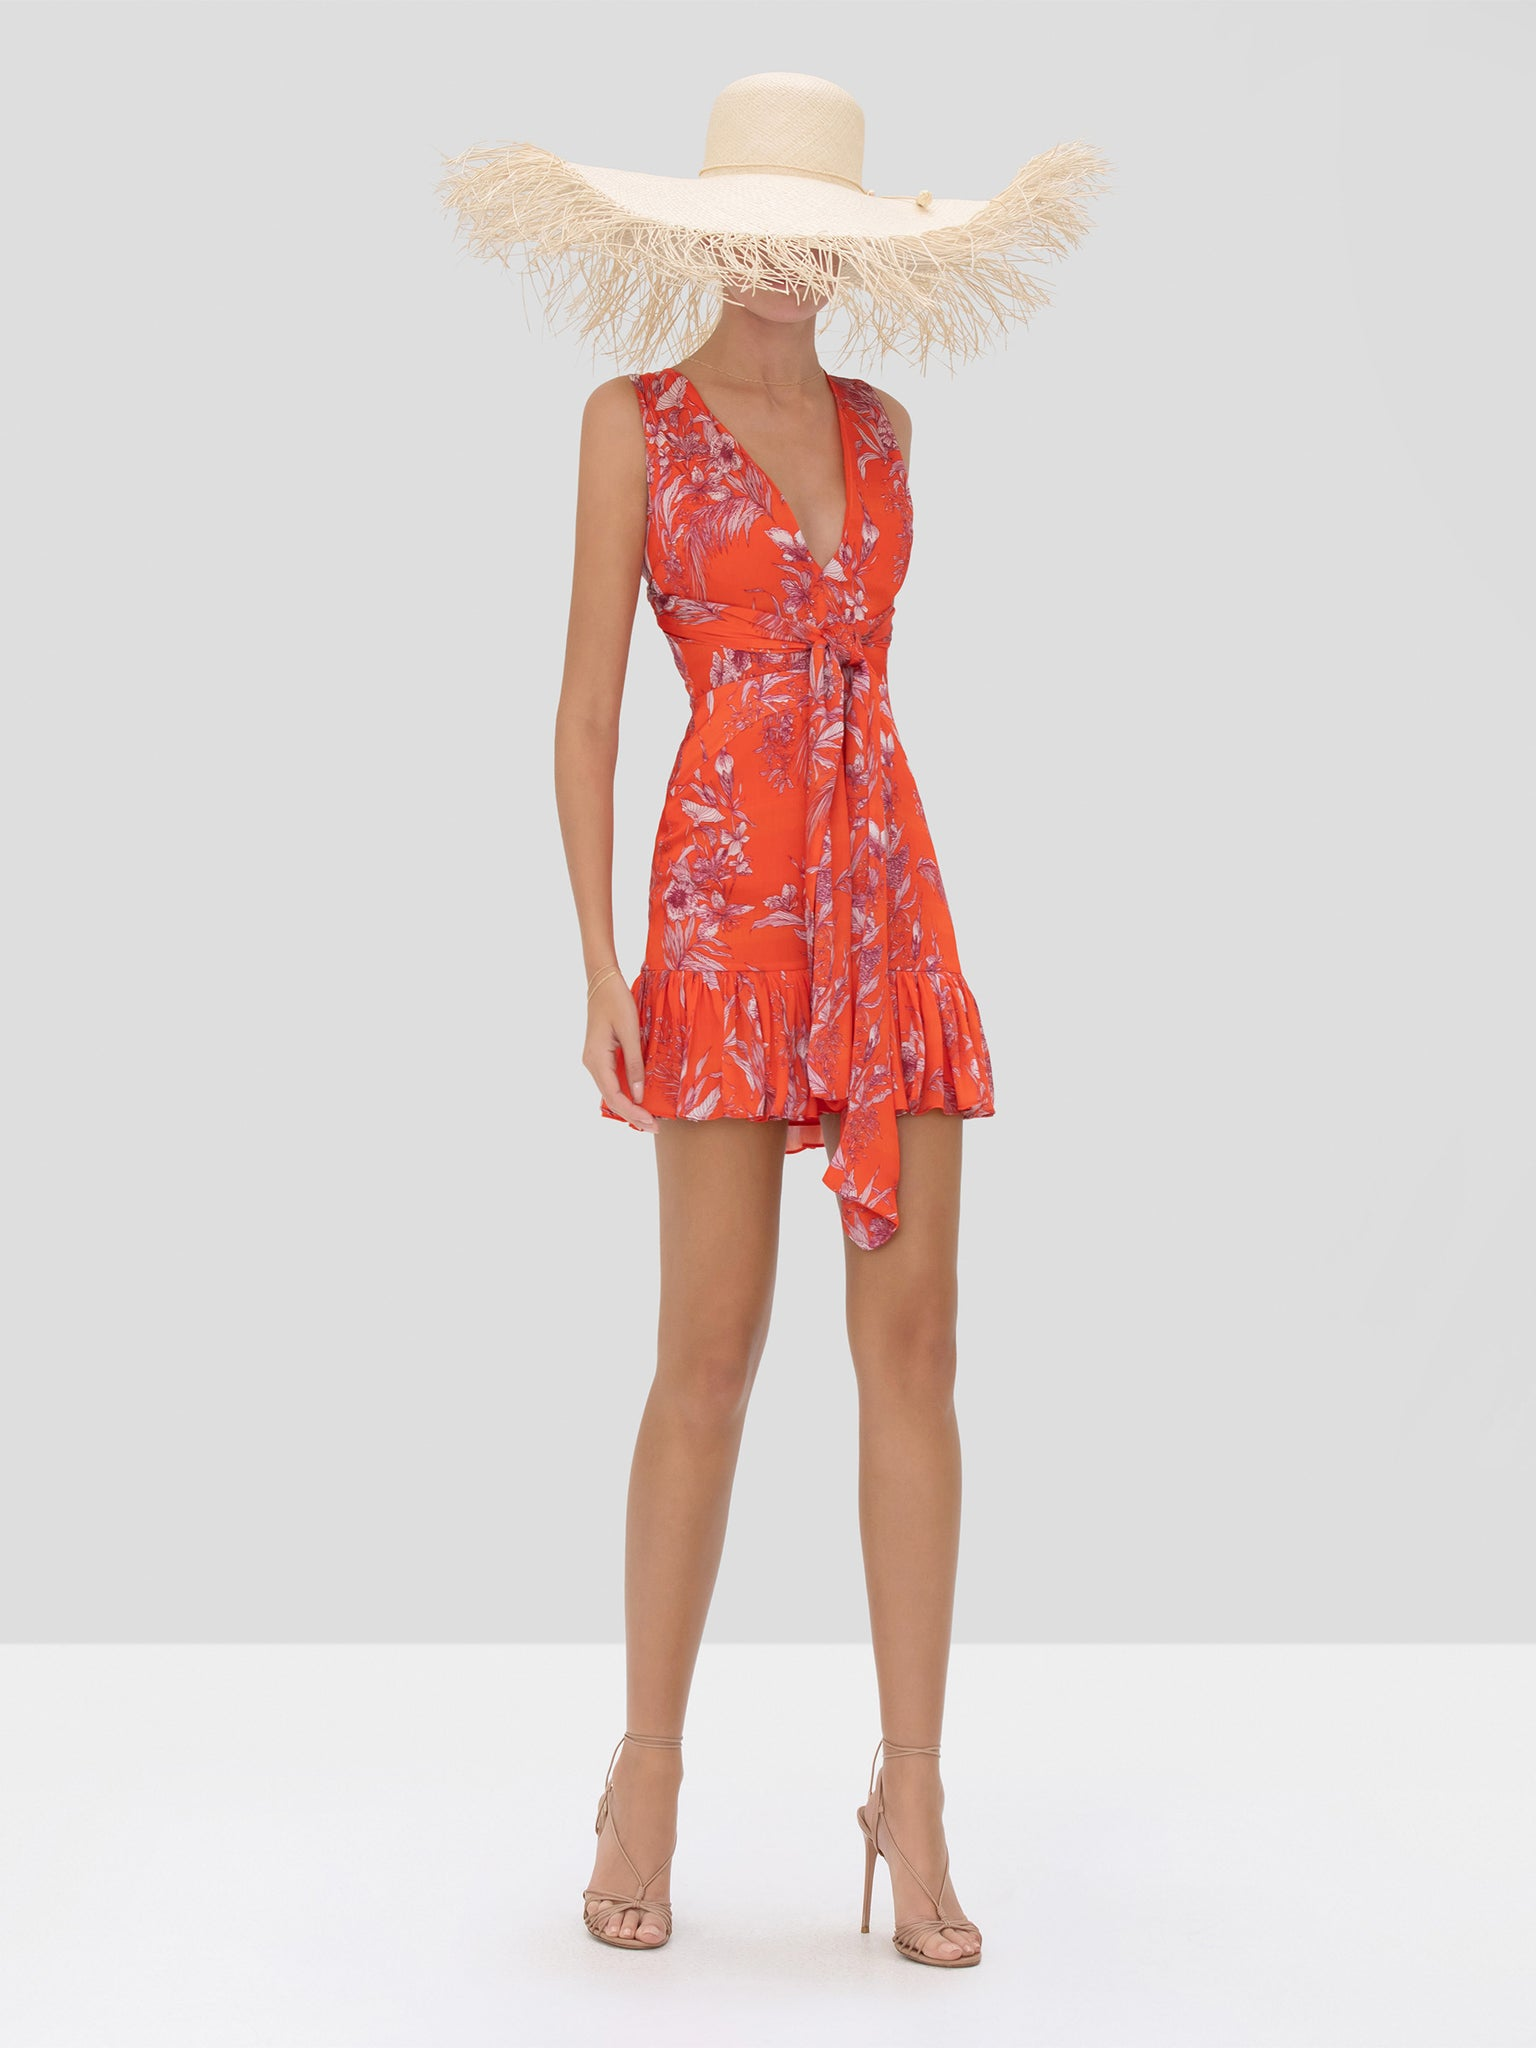 Alexis Cassara Dress in Mandarin Palm from Spring Summer 2020 Collection